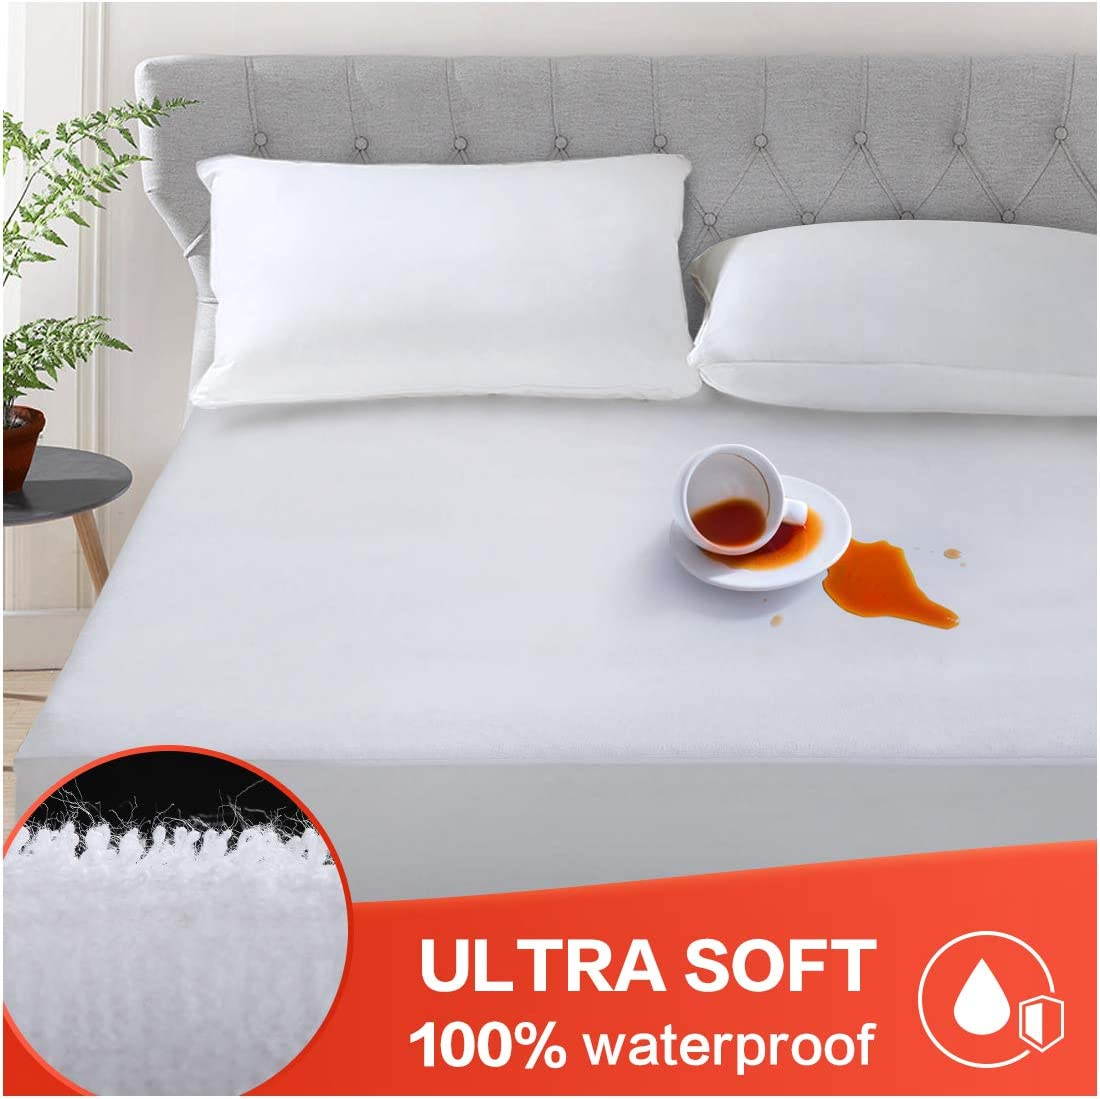 """HEPERON Queen Size Ultra-Soft & 100% Waterproof Mattress Protector, Mattress Pad, Mattress Cover, Vinyl-Free, Comfortable & Noiseless, Fitted for 8""""-21"""" mattresses (Snow White, Queen)"""